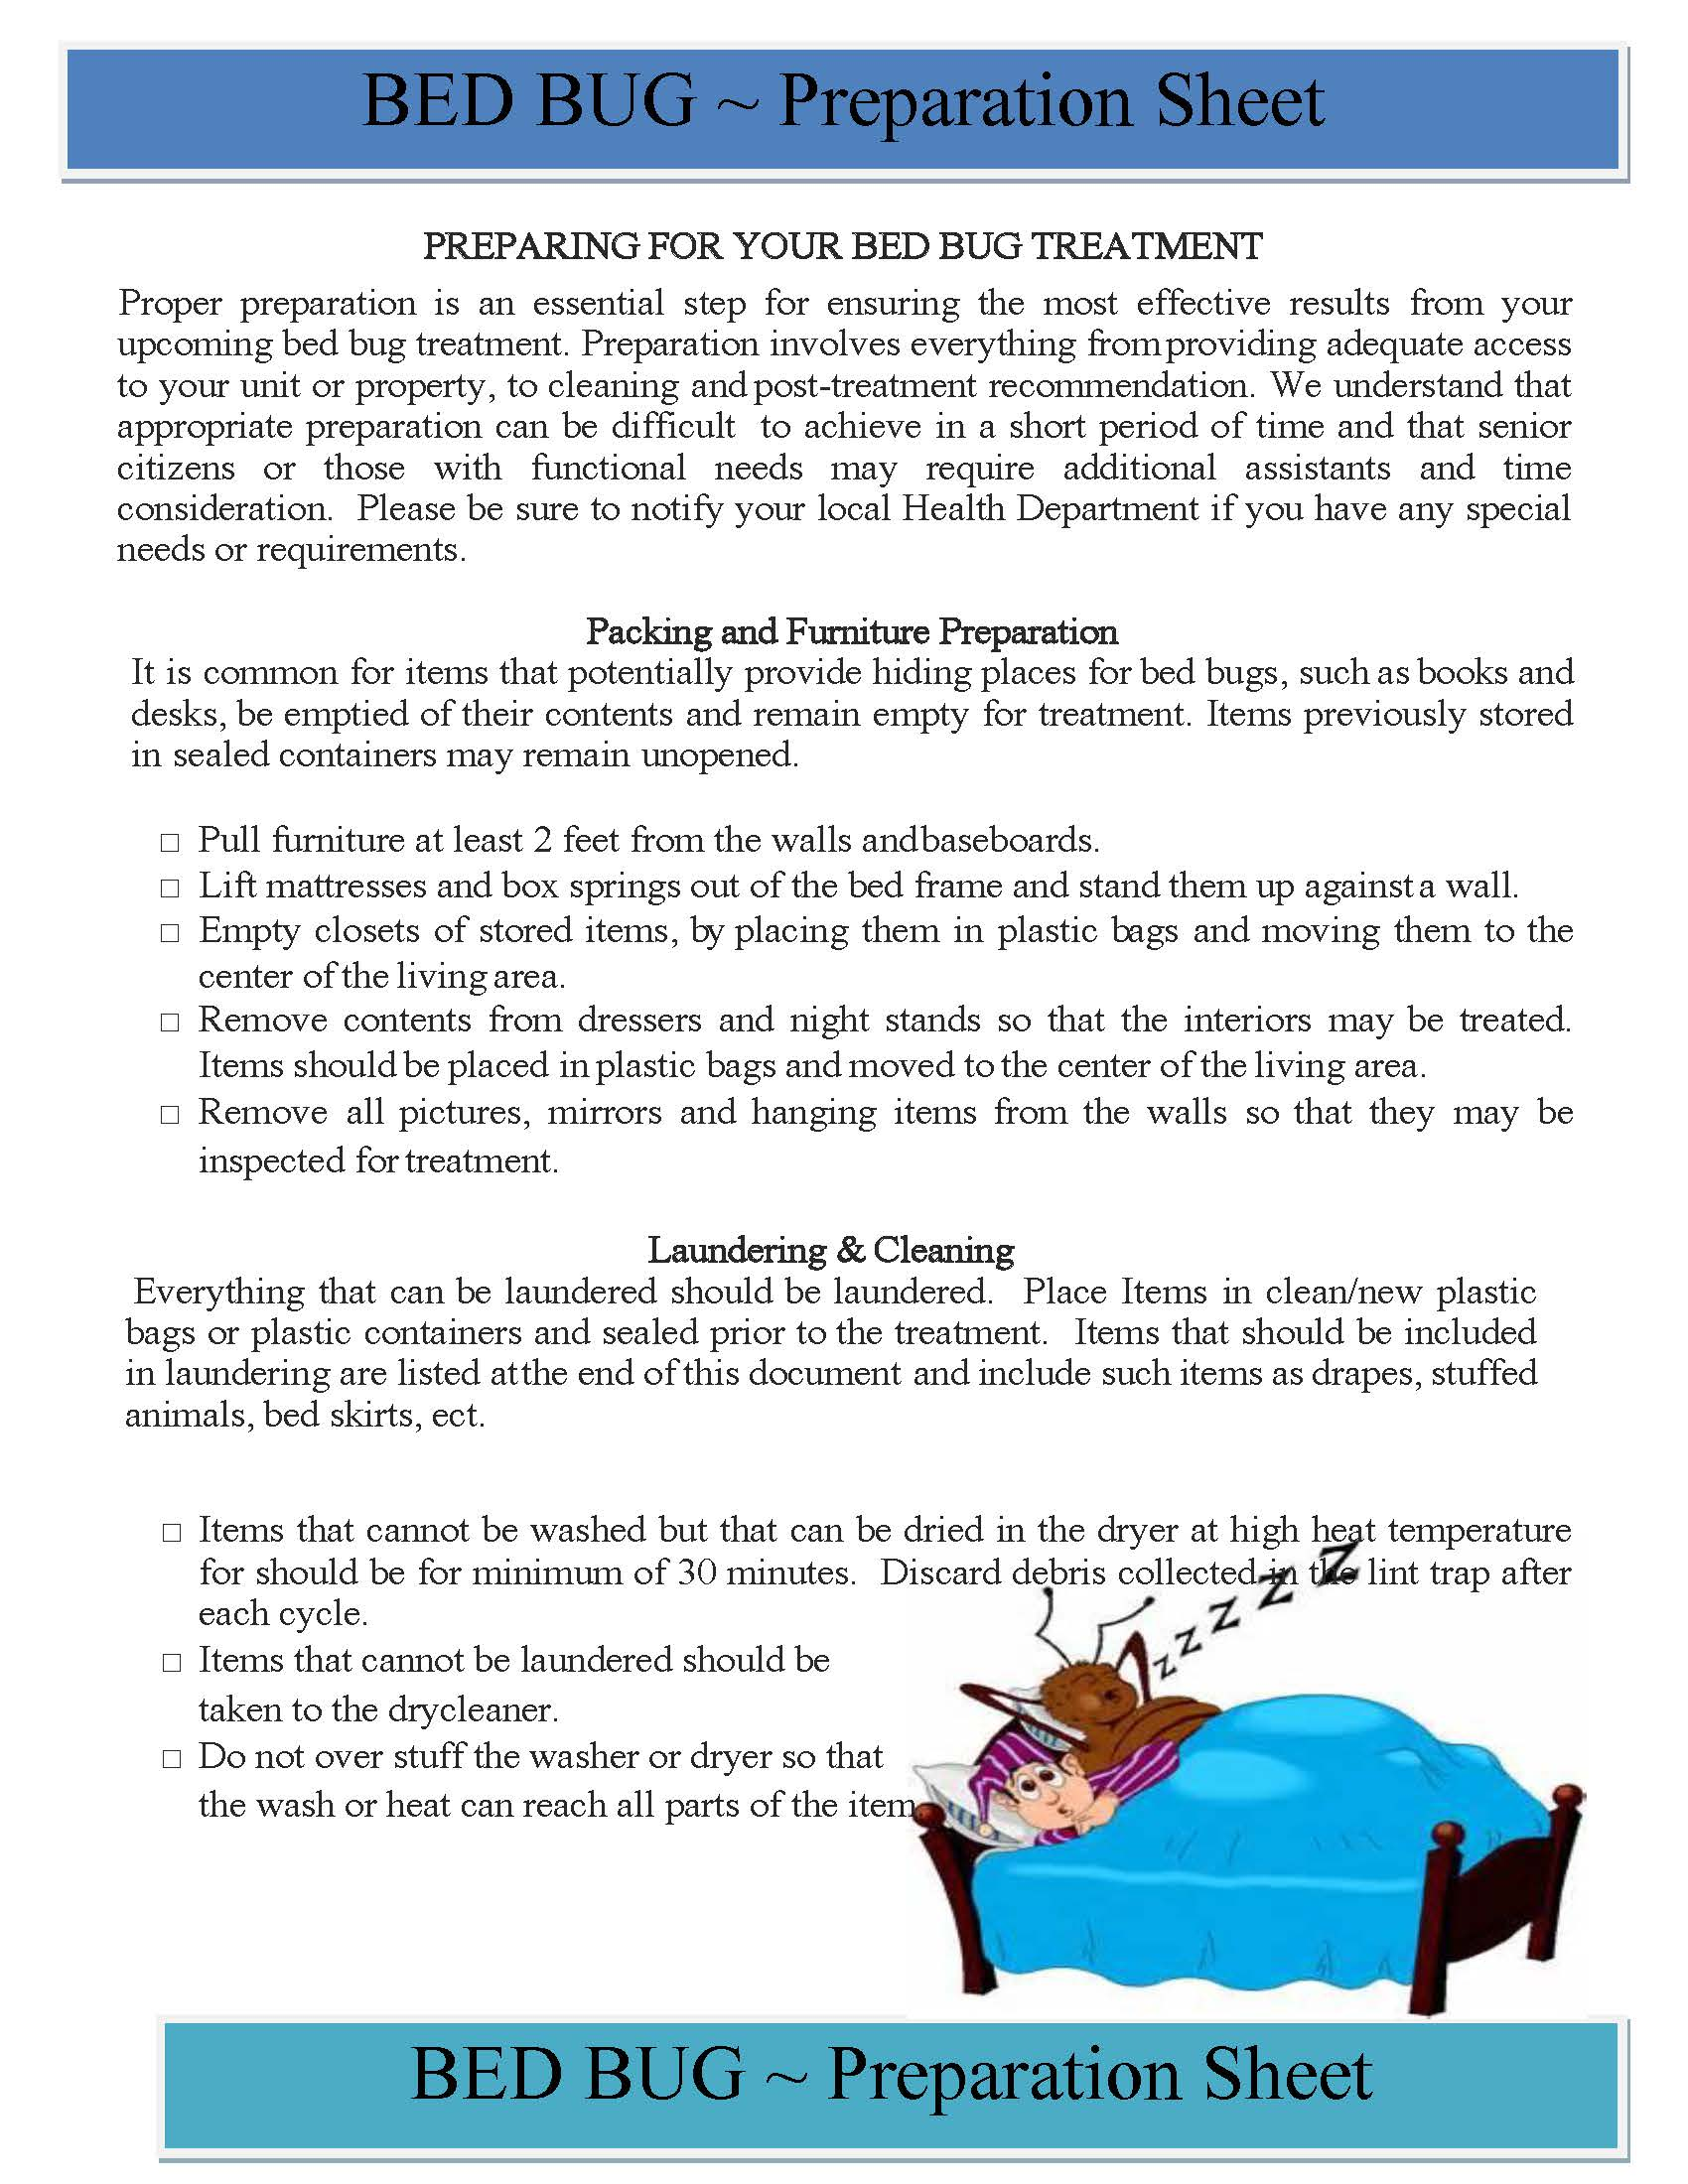 Preparing for Your Bed Bug Treatment, Page 1